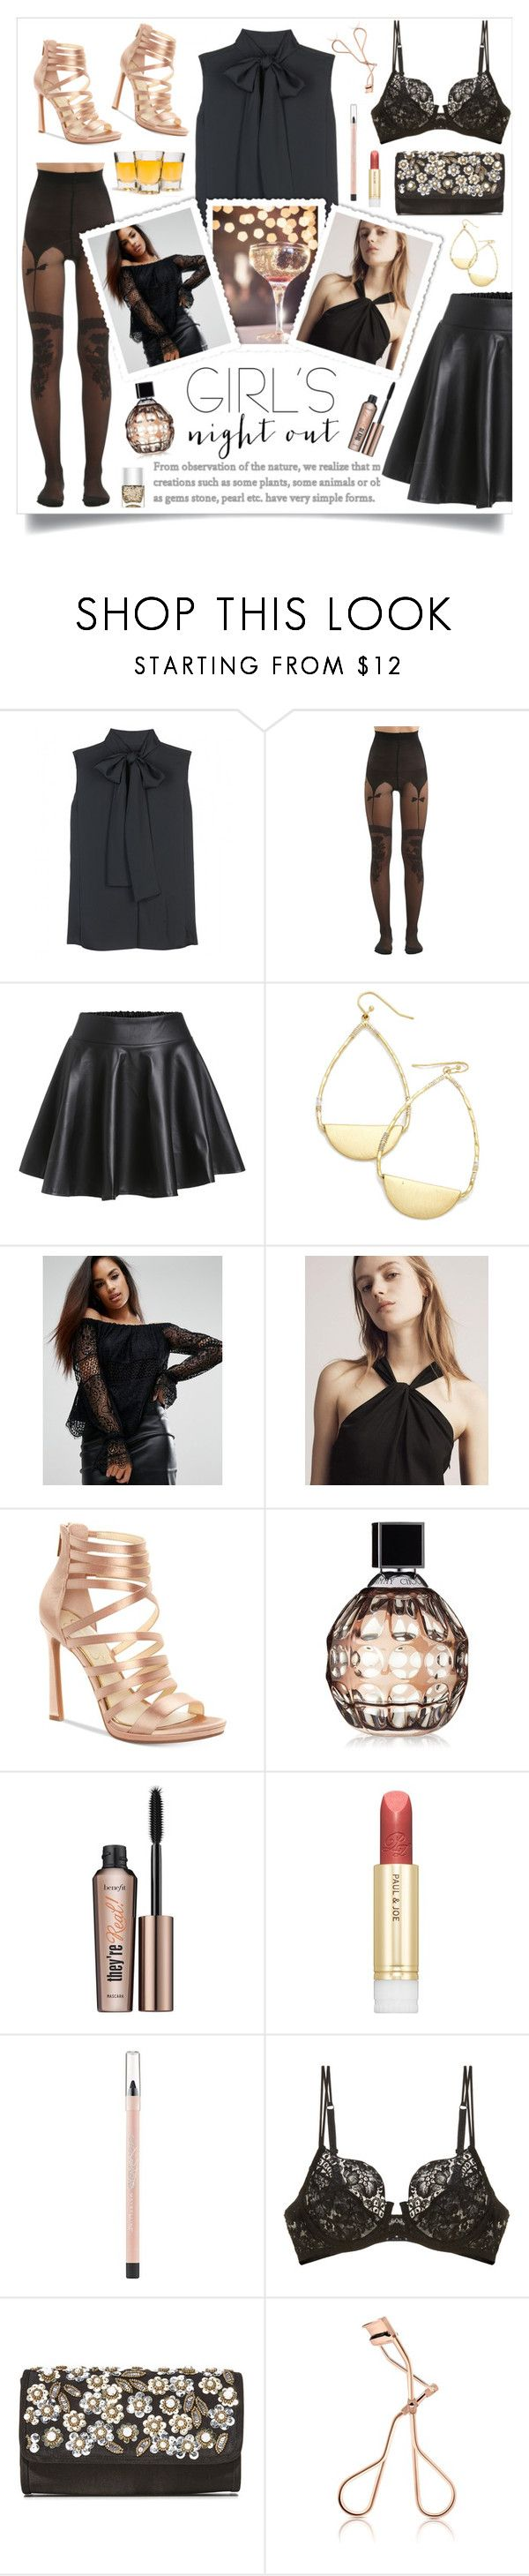 """""""Girls Night Out 🍸"""" by linmari ❤ liked on Polyvore featuring Victoria Beckham, Chantal Thomass, Kendall + Kylie, rag & bone, Jessica Simpson, Jimmy Choo, Benefit, Paul & Joe, Maybelline and La Perla"""